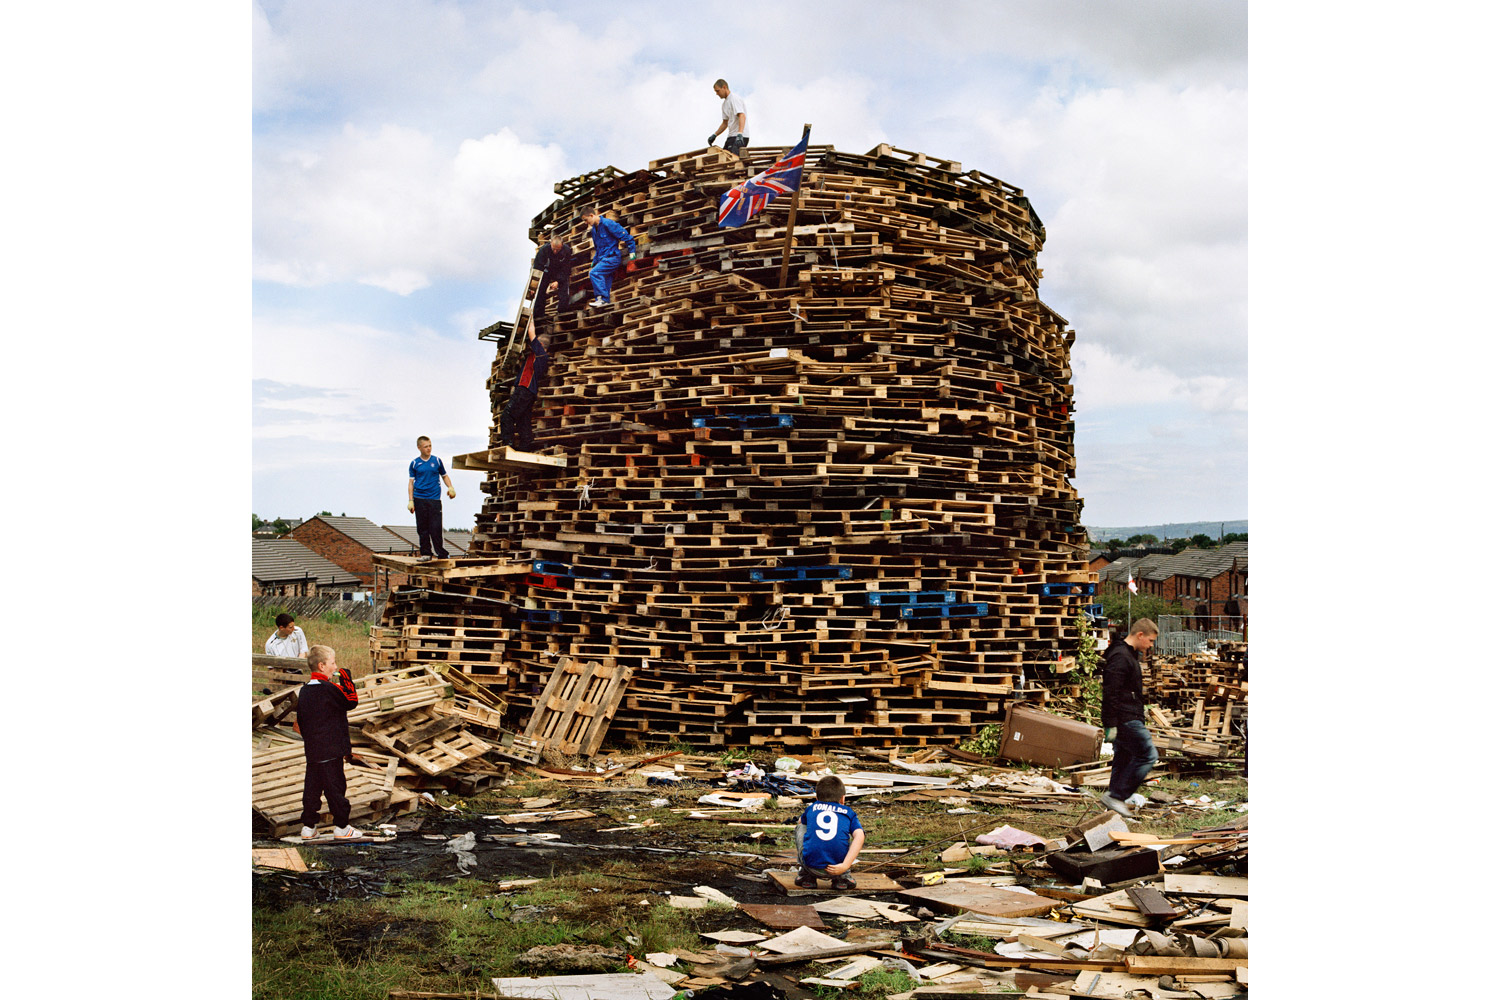 Each year, youth in loyalist Upper Ardoyne build a bonfire to be set alight on the evening of July 11 as part of the annual celebrations held to commemorate the victory of Protestant King William of Orange over the Catholic King James II, in 1690. Young people in Protestant estates such as this spend weeks scavenging wood to build the structure, and even stand watch, fearing that it may be attacked and destroyed by rival Catholic youth. 2011.